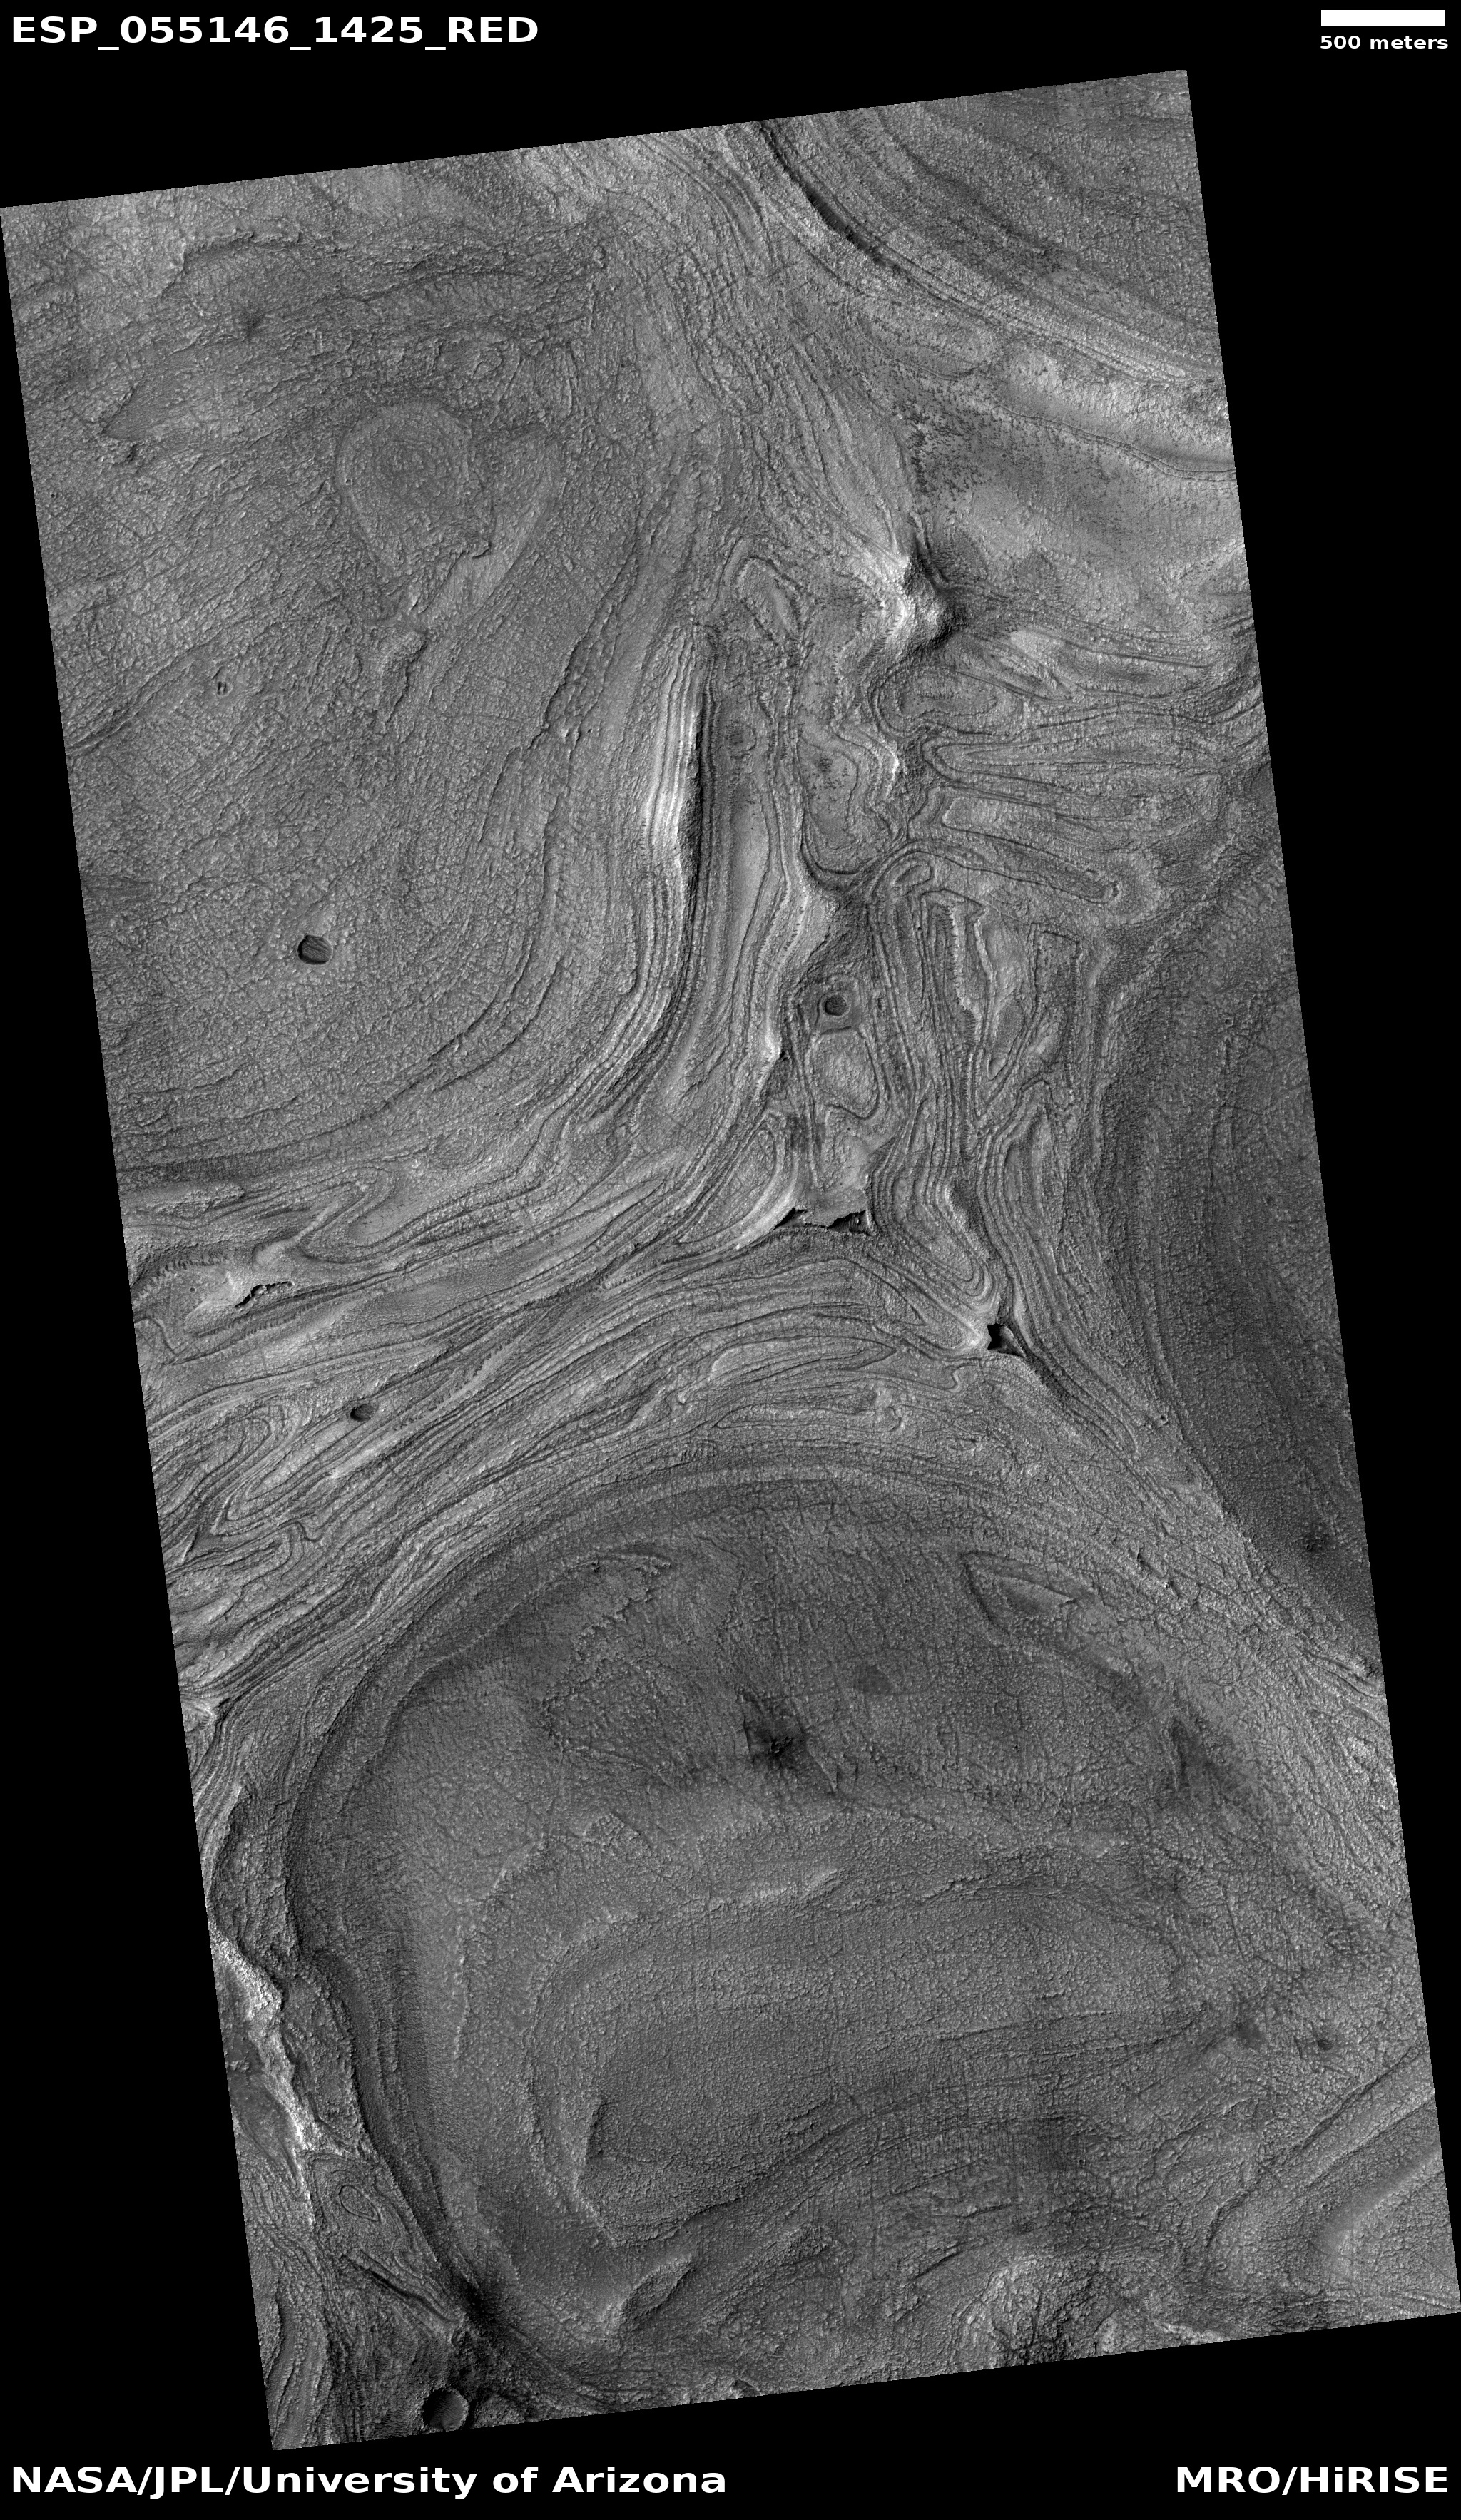 Wide view of twisted bands on the floor of Hellas Planitia, as seen by HiRISE under HiWish program